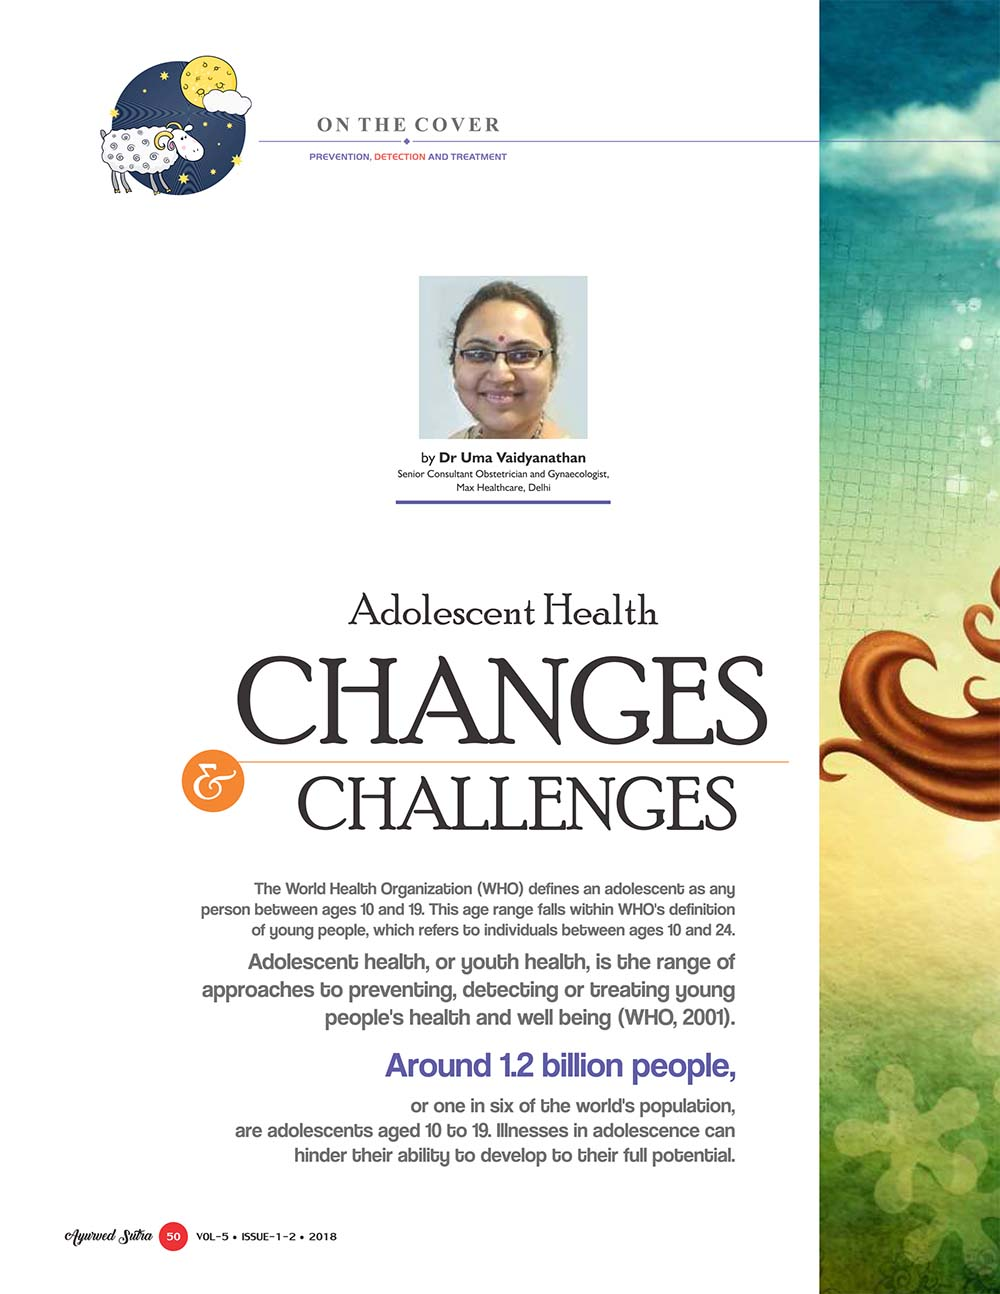 Ayurvedsutra Vol 05 issue 01 02 52 - Adolescent Health: Changes and Challenges